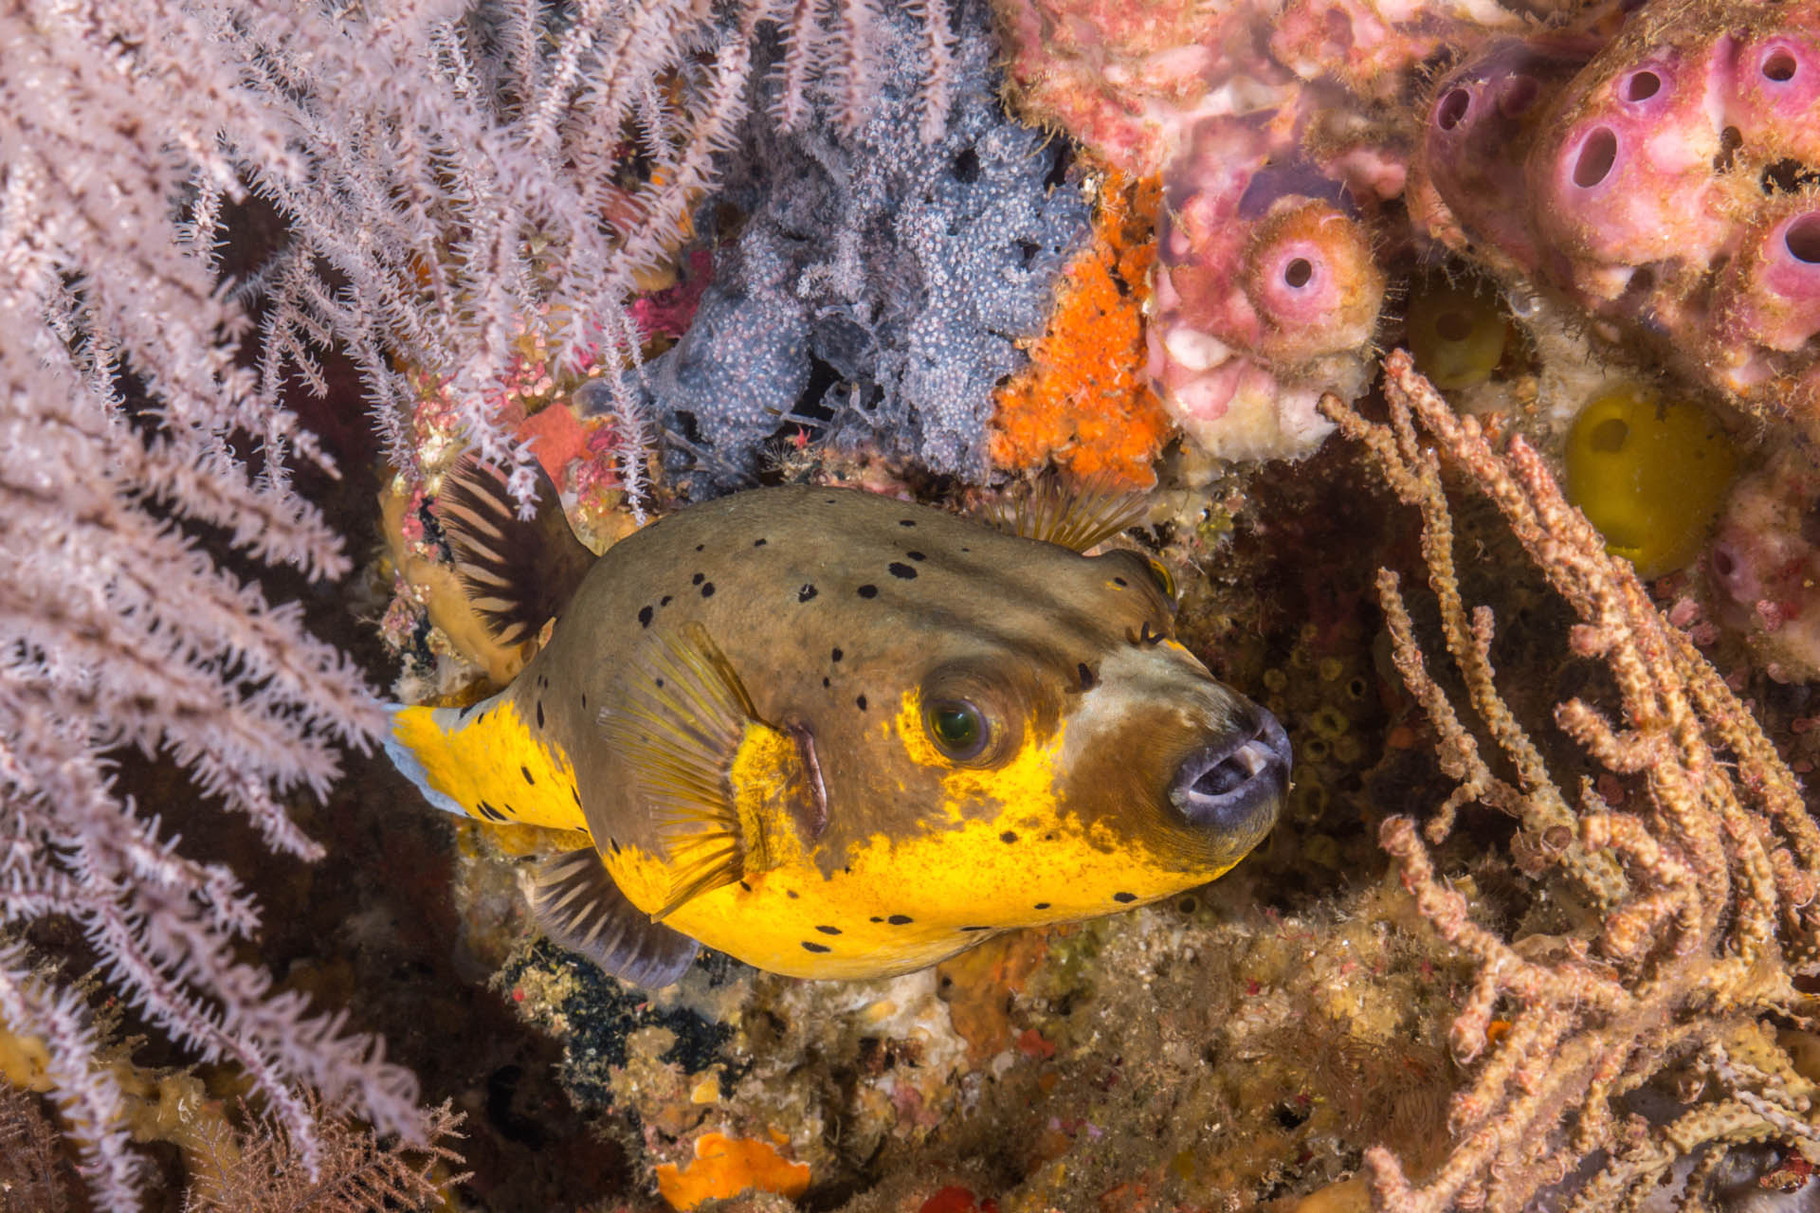 Blackspotted puffer - Olive and orange variation (Arothron nigropunctatus)